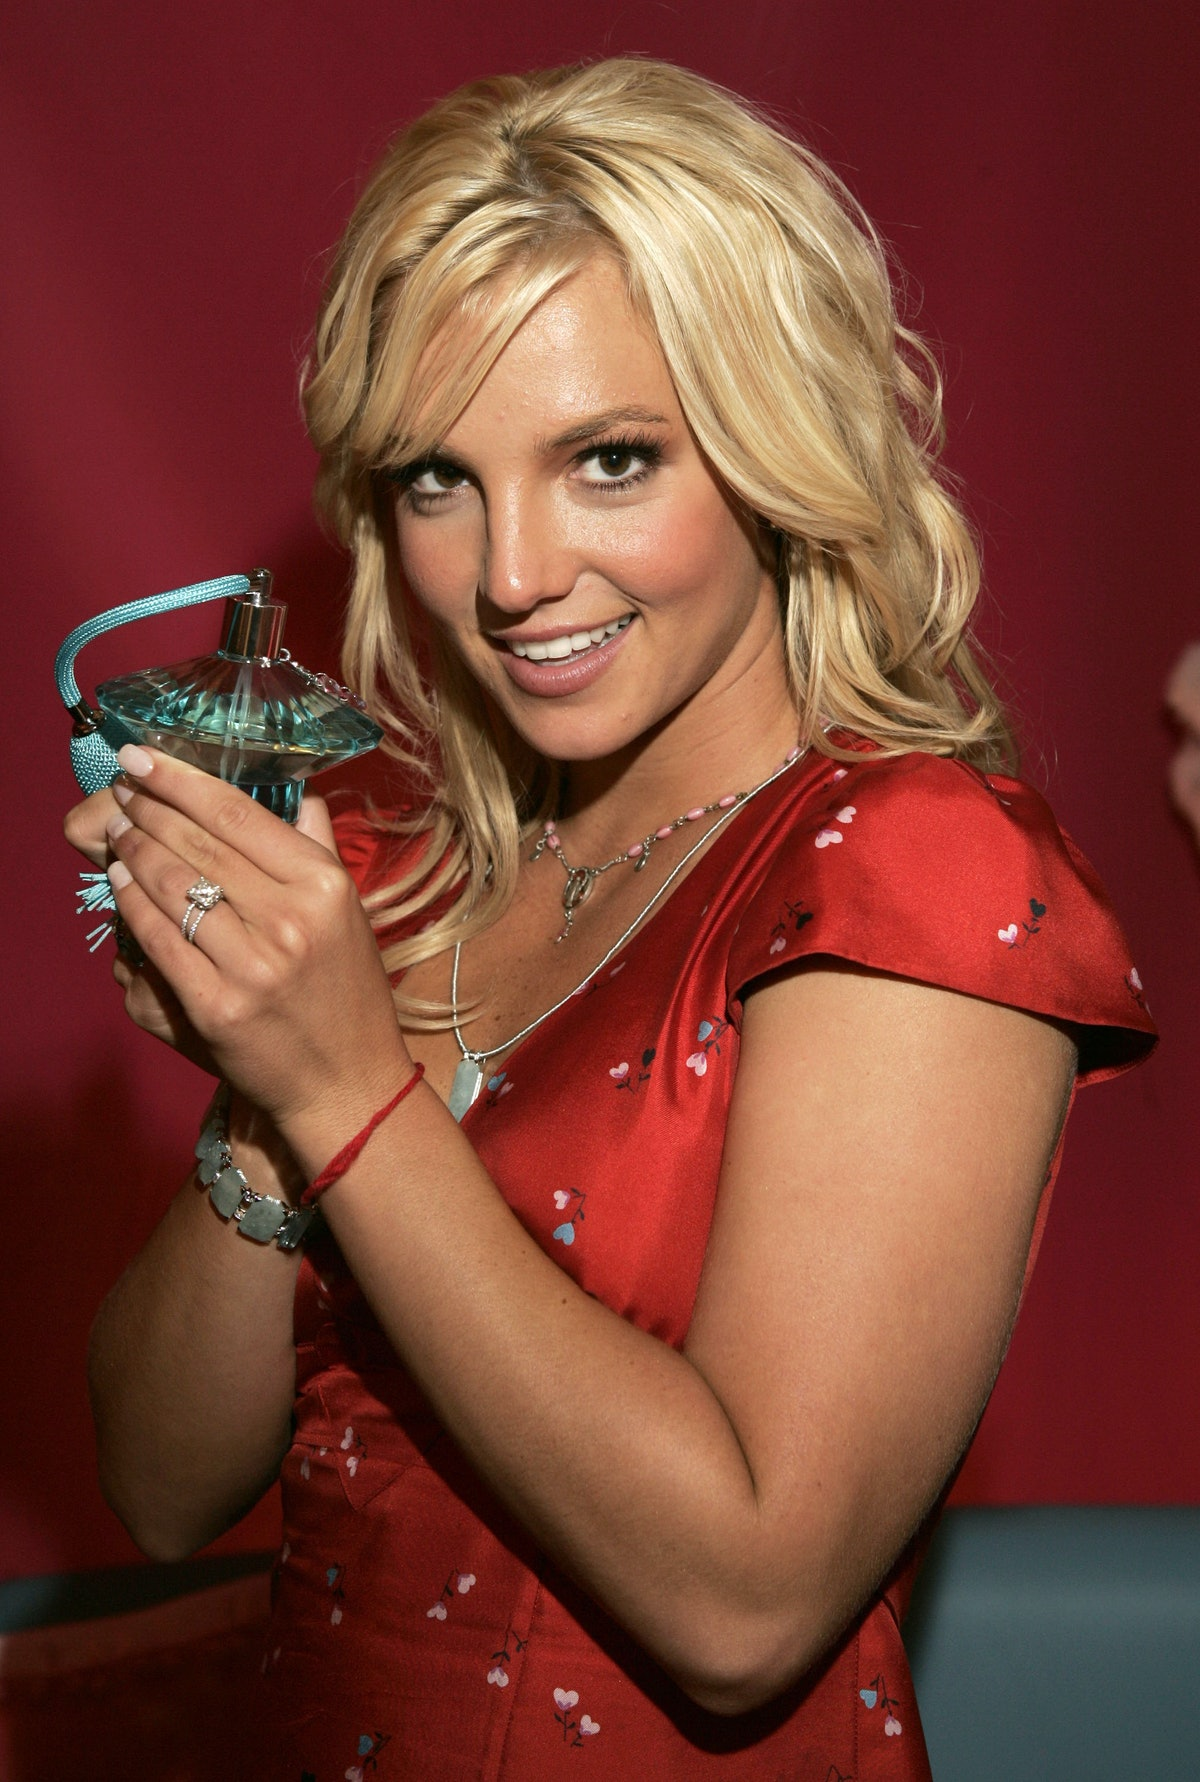 """Britney Spears Introducing Her New Fragrance """"Curious"""" at Macy's"""